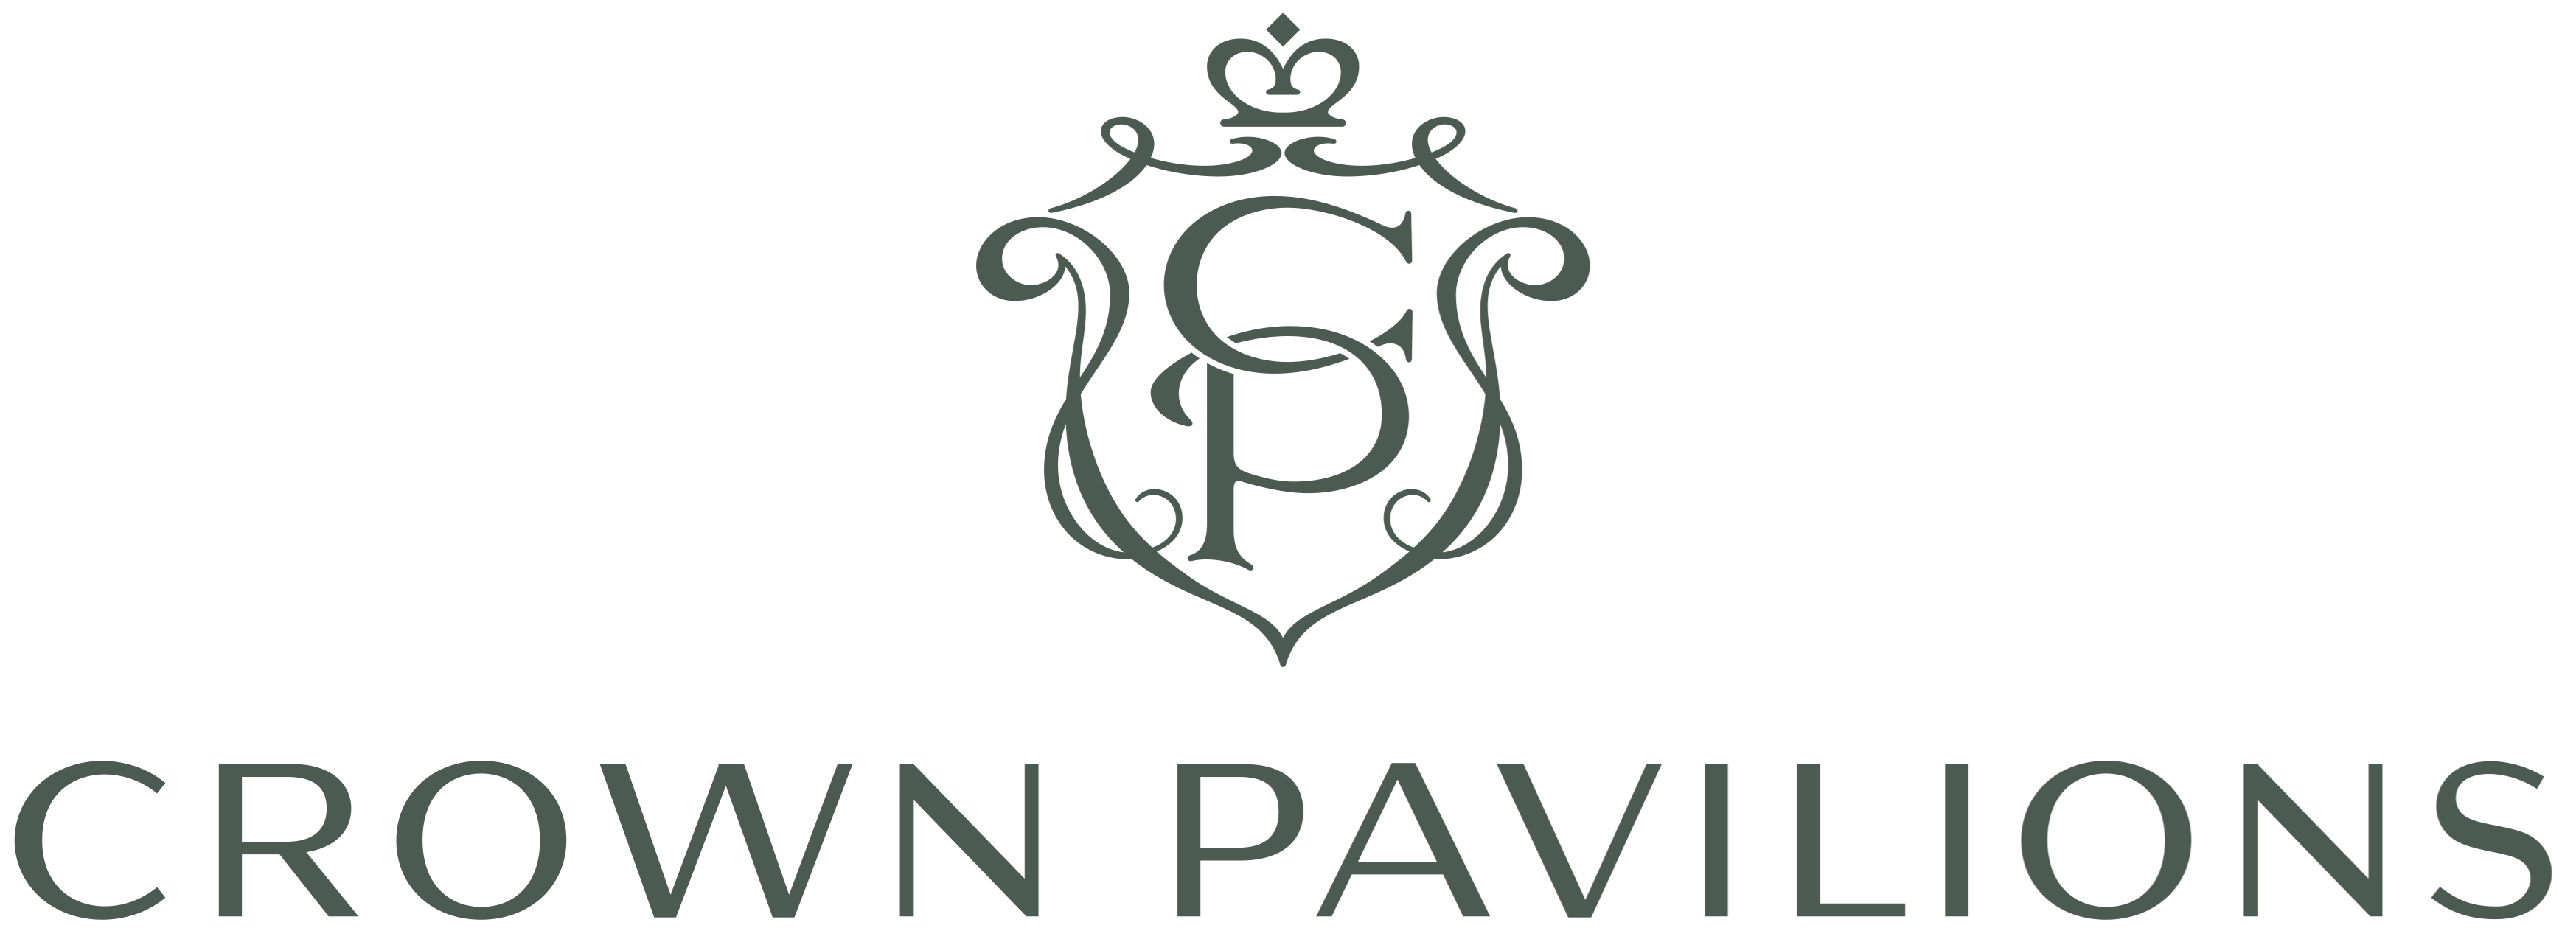 Crown Pavilions proudly supports Sport at Goodwood